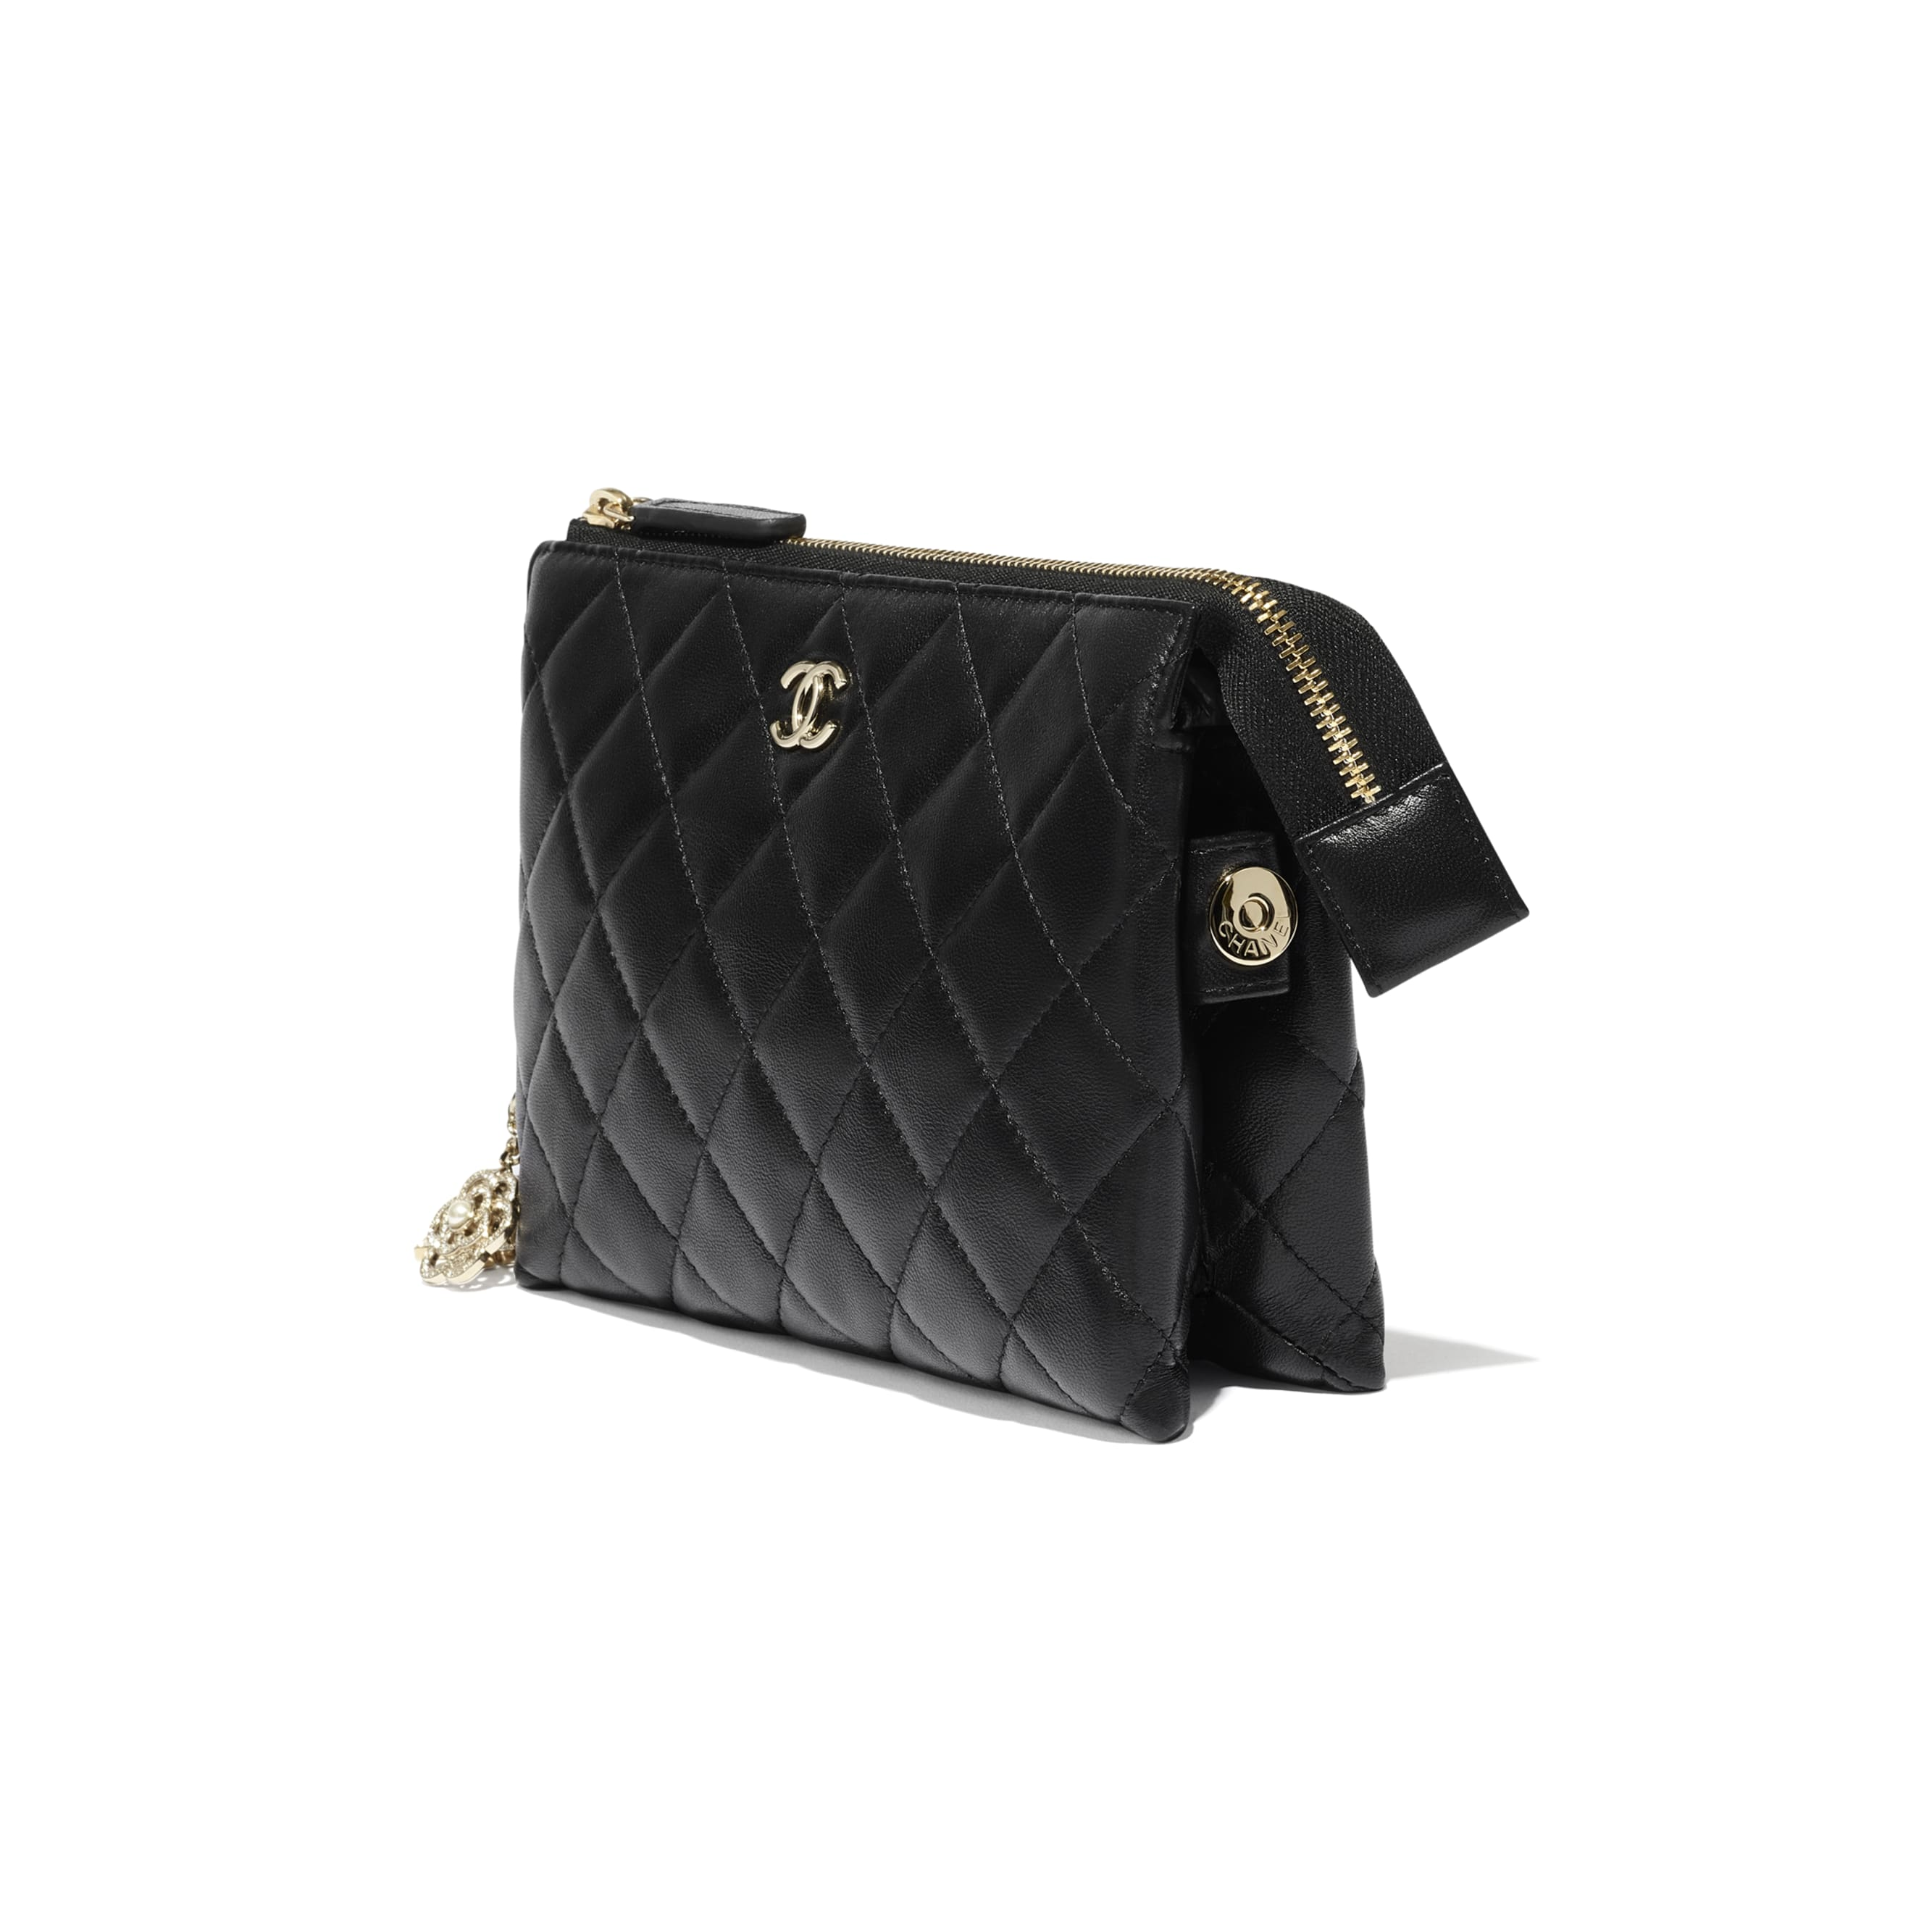 Pouch - Black - Lambskin, Charms & Gold-Tone Metal - CHANEL - Other view - see standard sized version